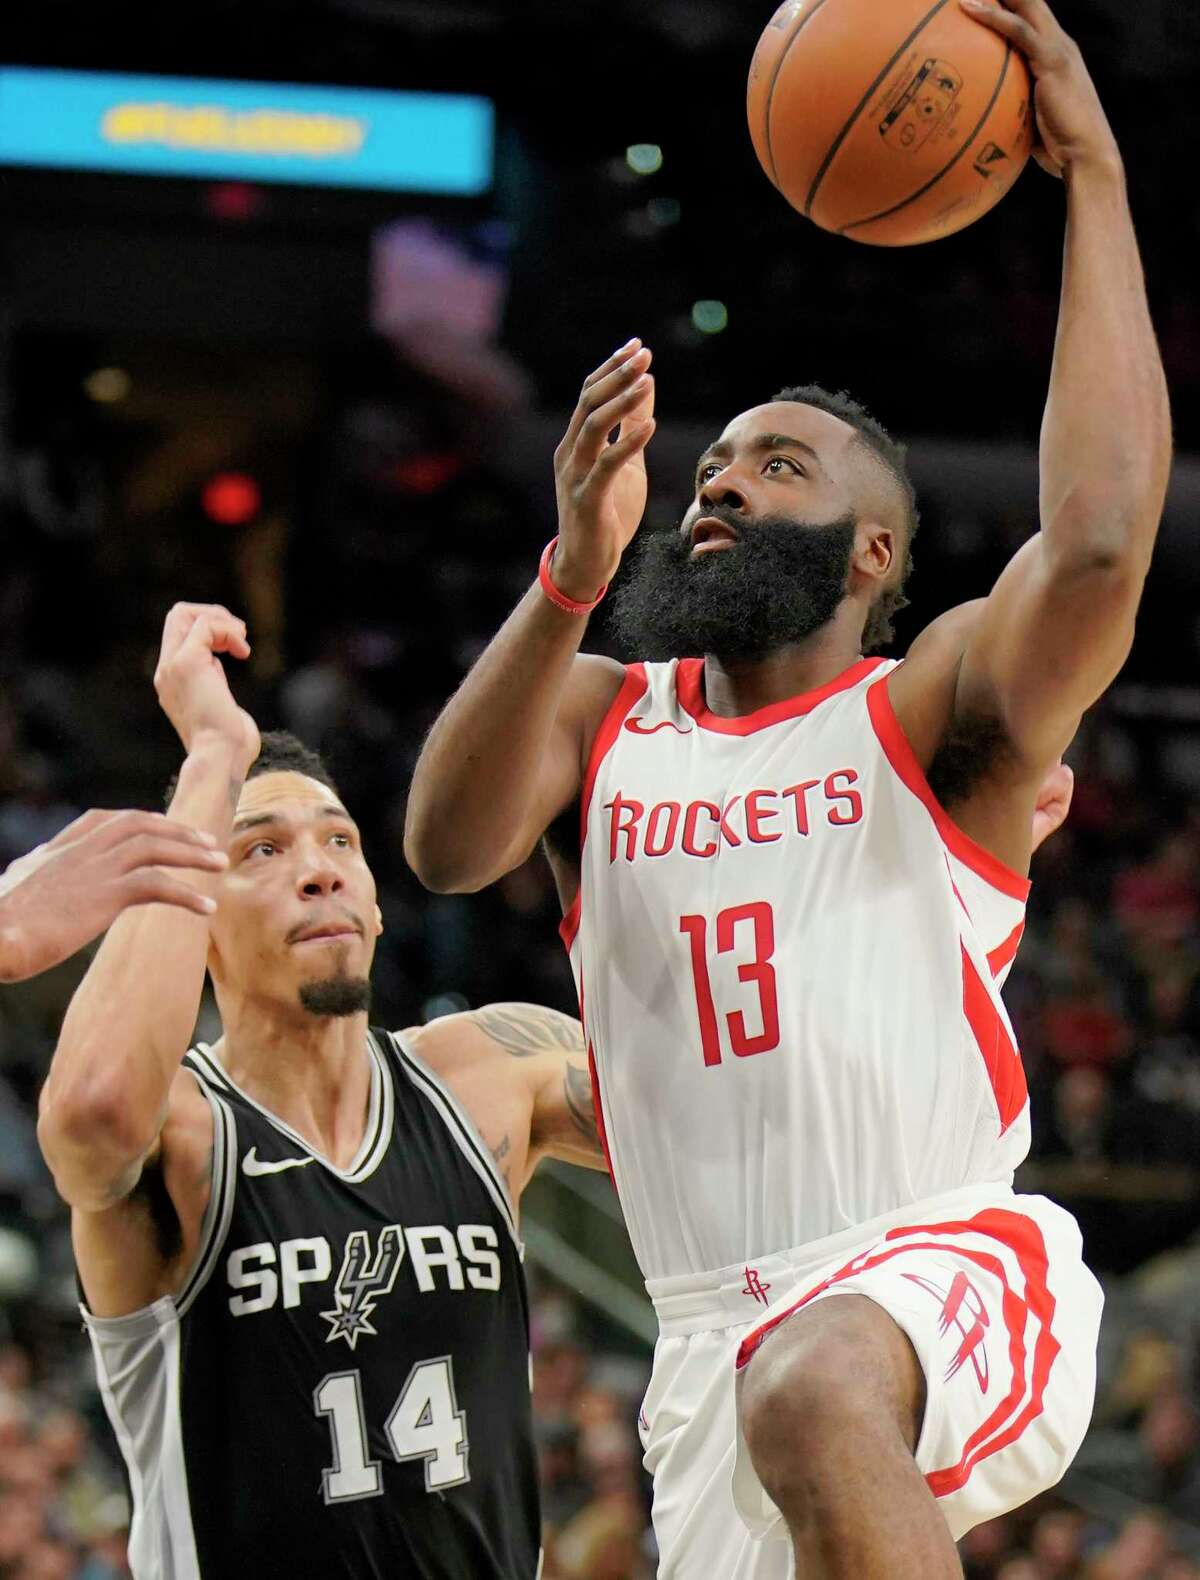 James Harden served as the Rockets' safety net all game long Thursday night against Danny Green and the Spurs. With 28 points and 11 assists, Harden ensured the Rockets retained the upper hand throughout the game.